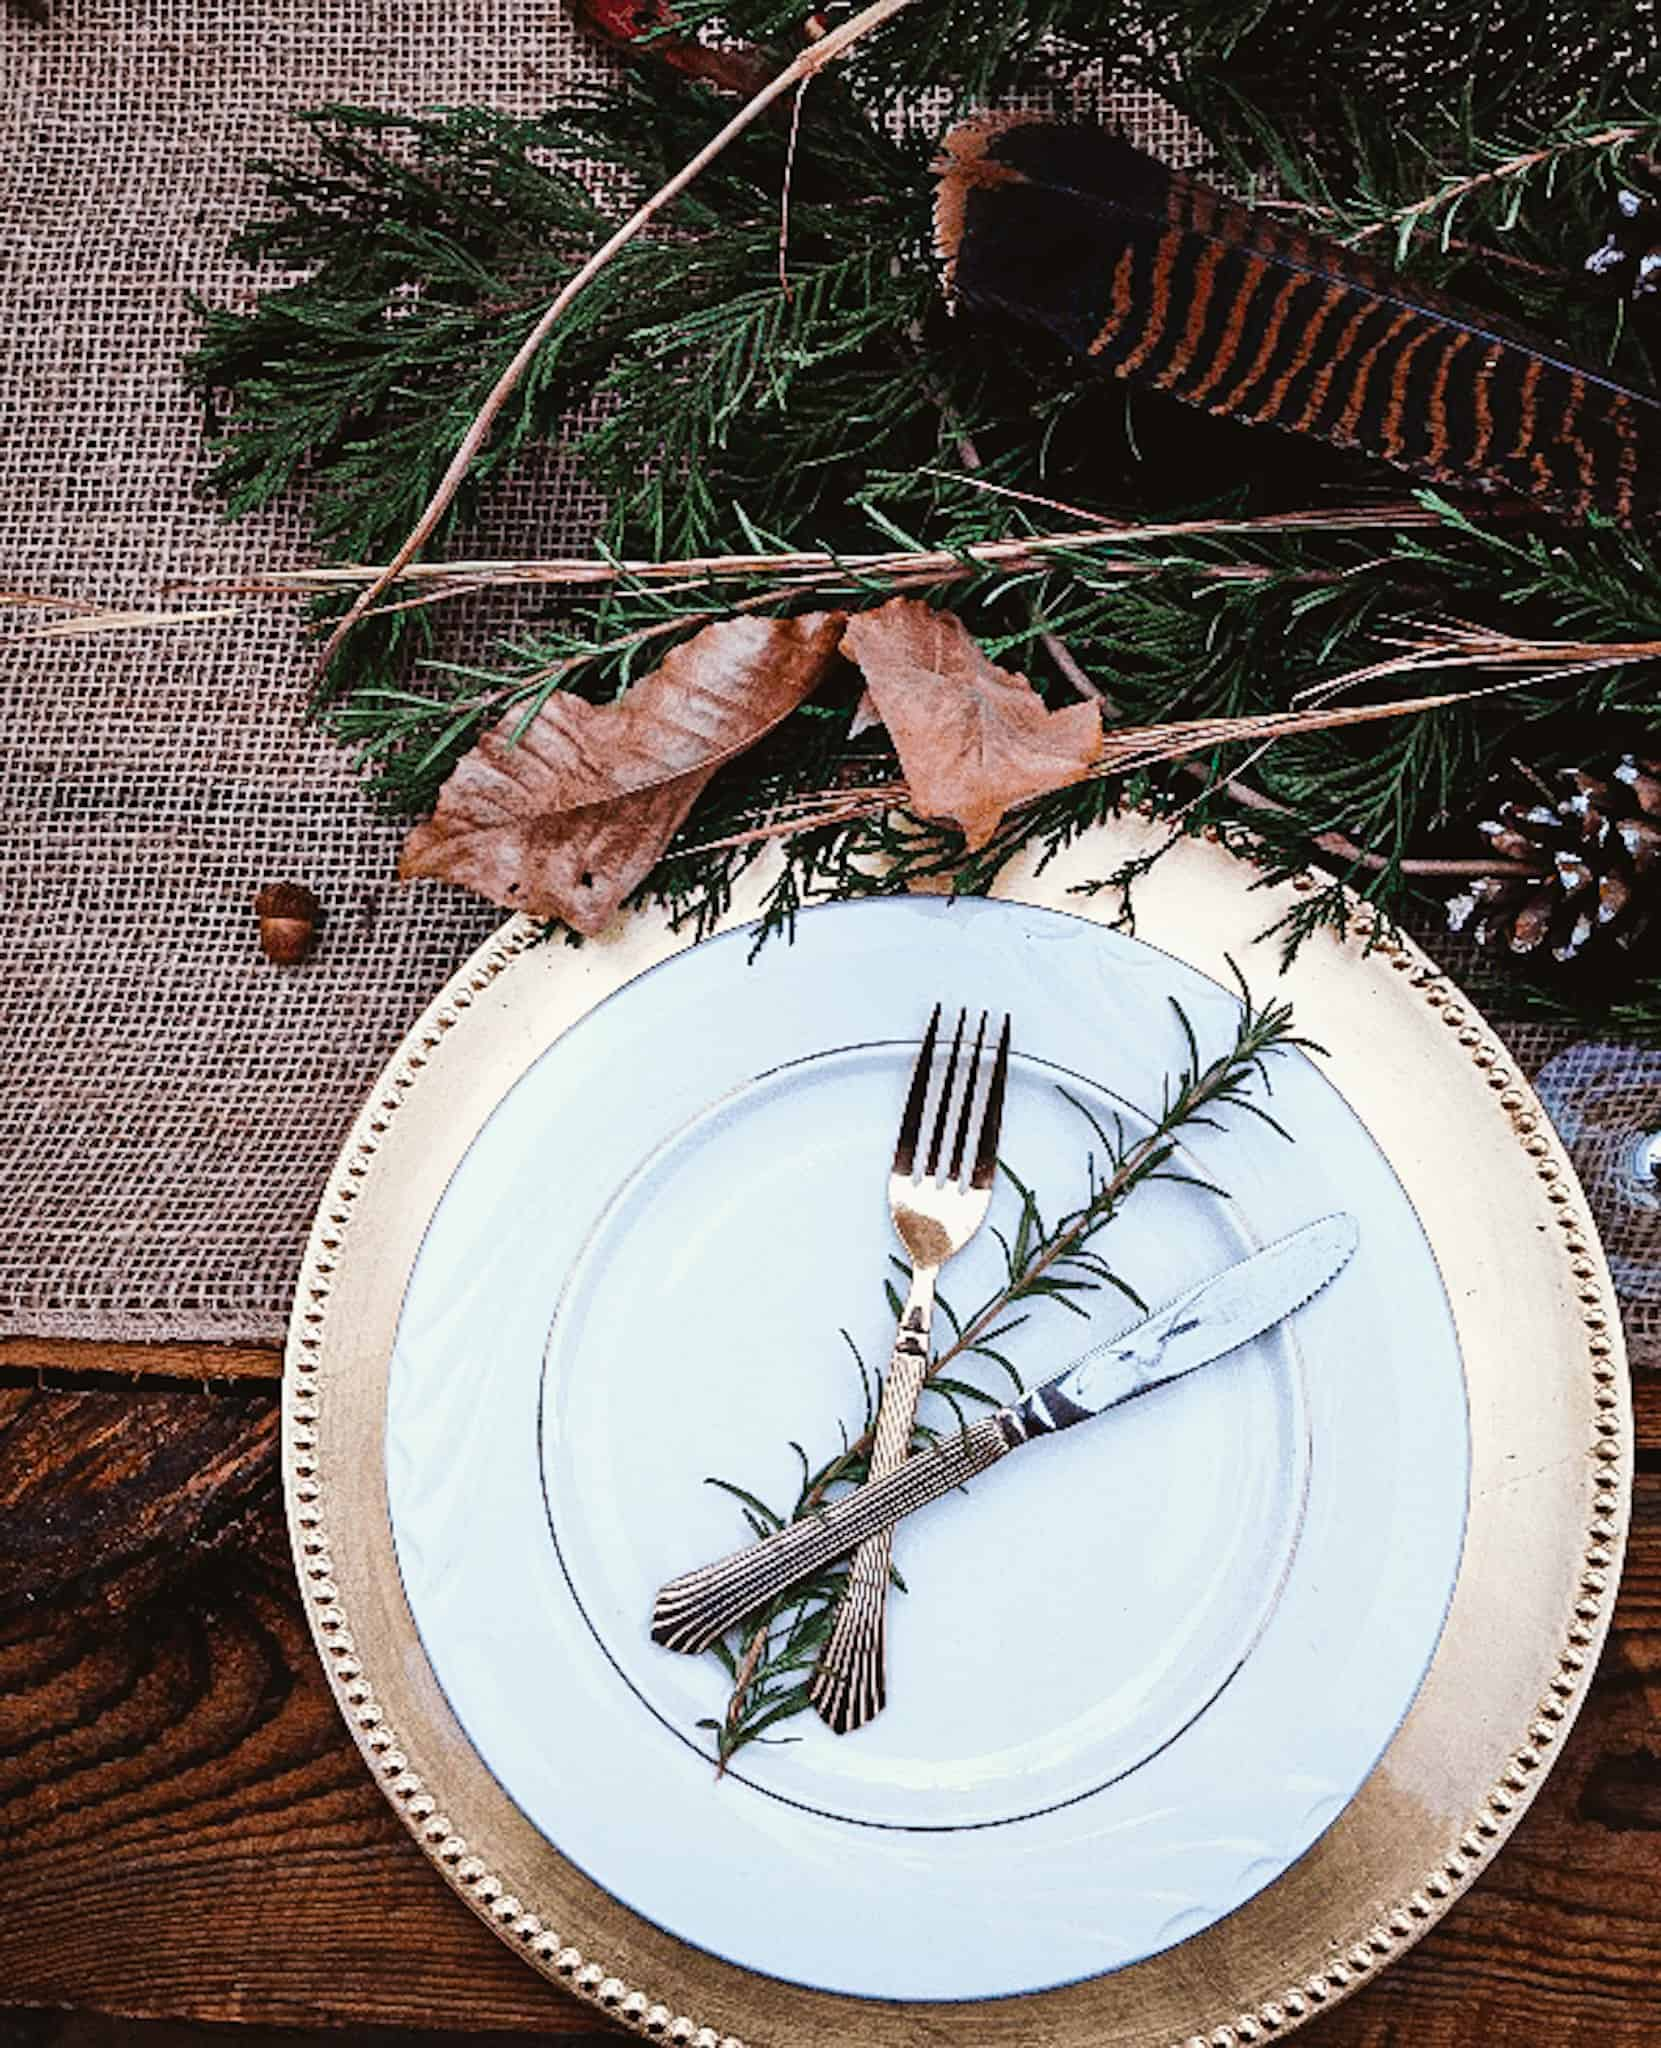 turkey feathers acorns and leaves as natural thanksgiving table decor